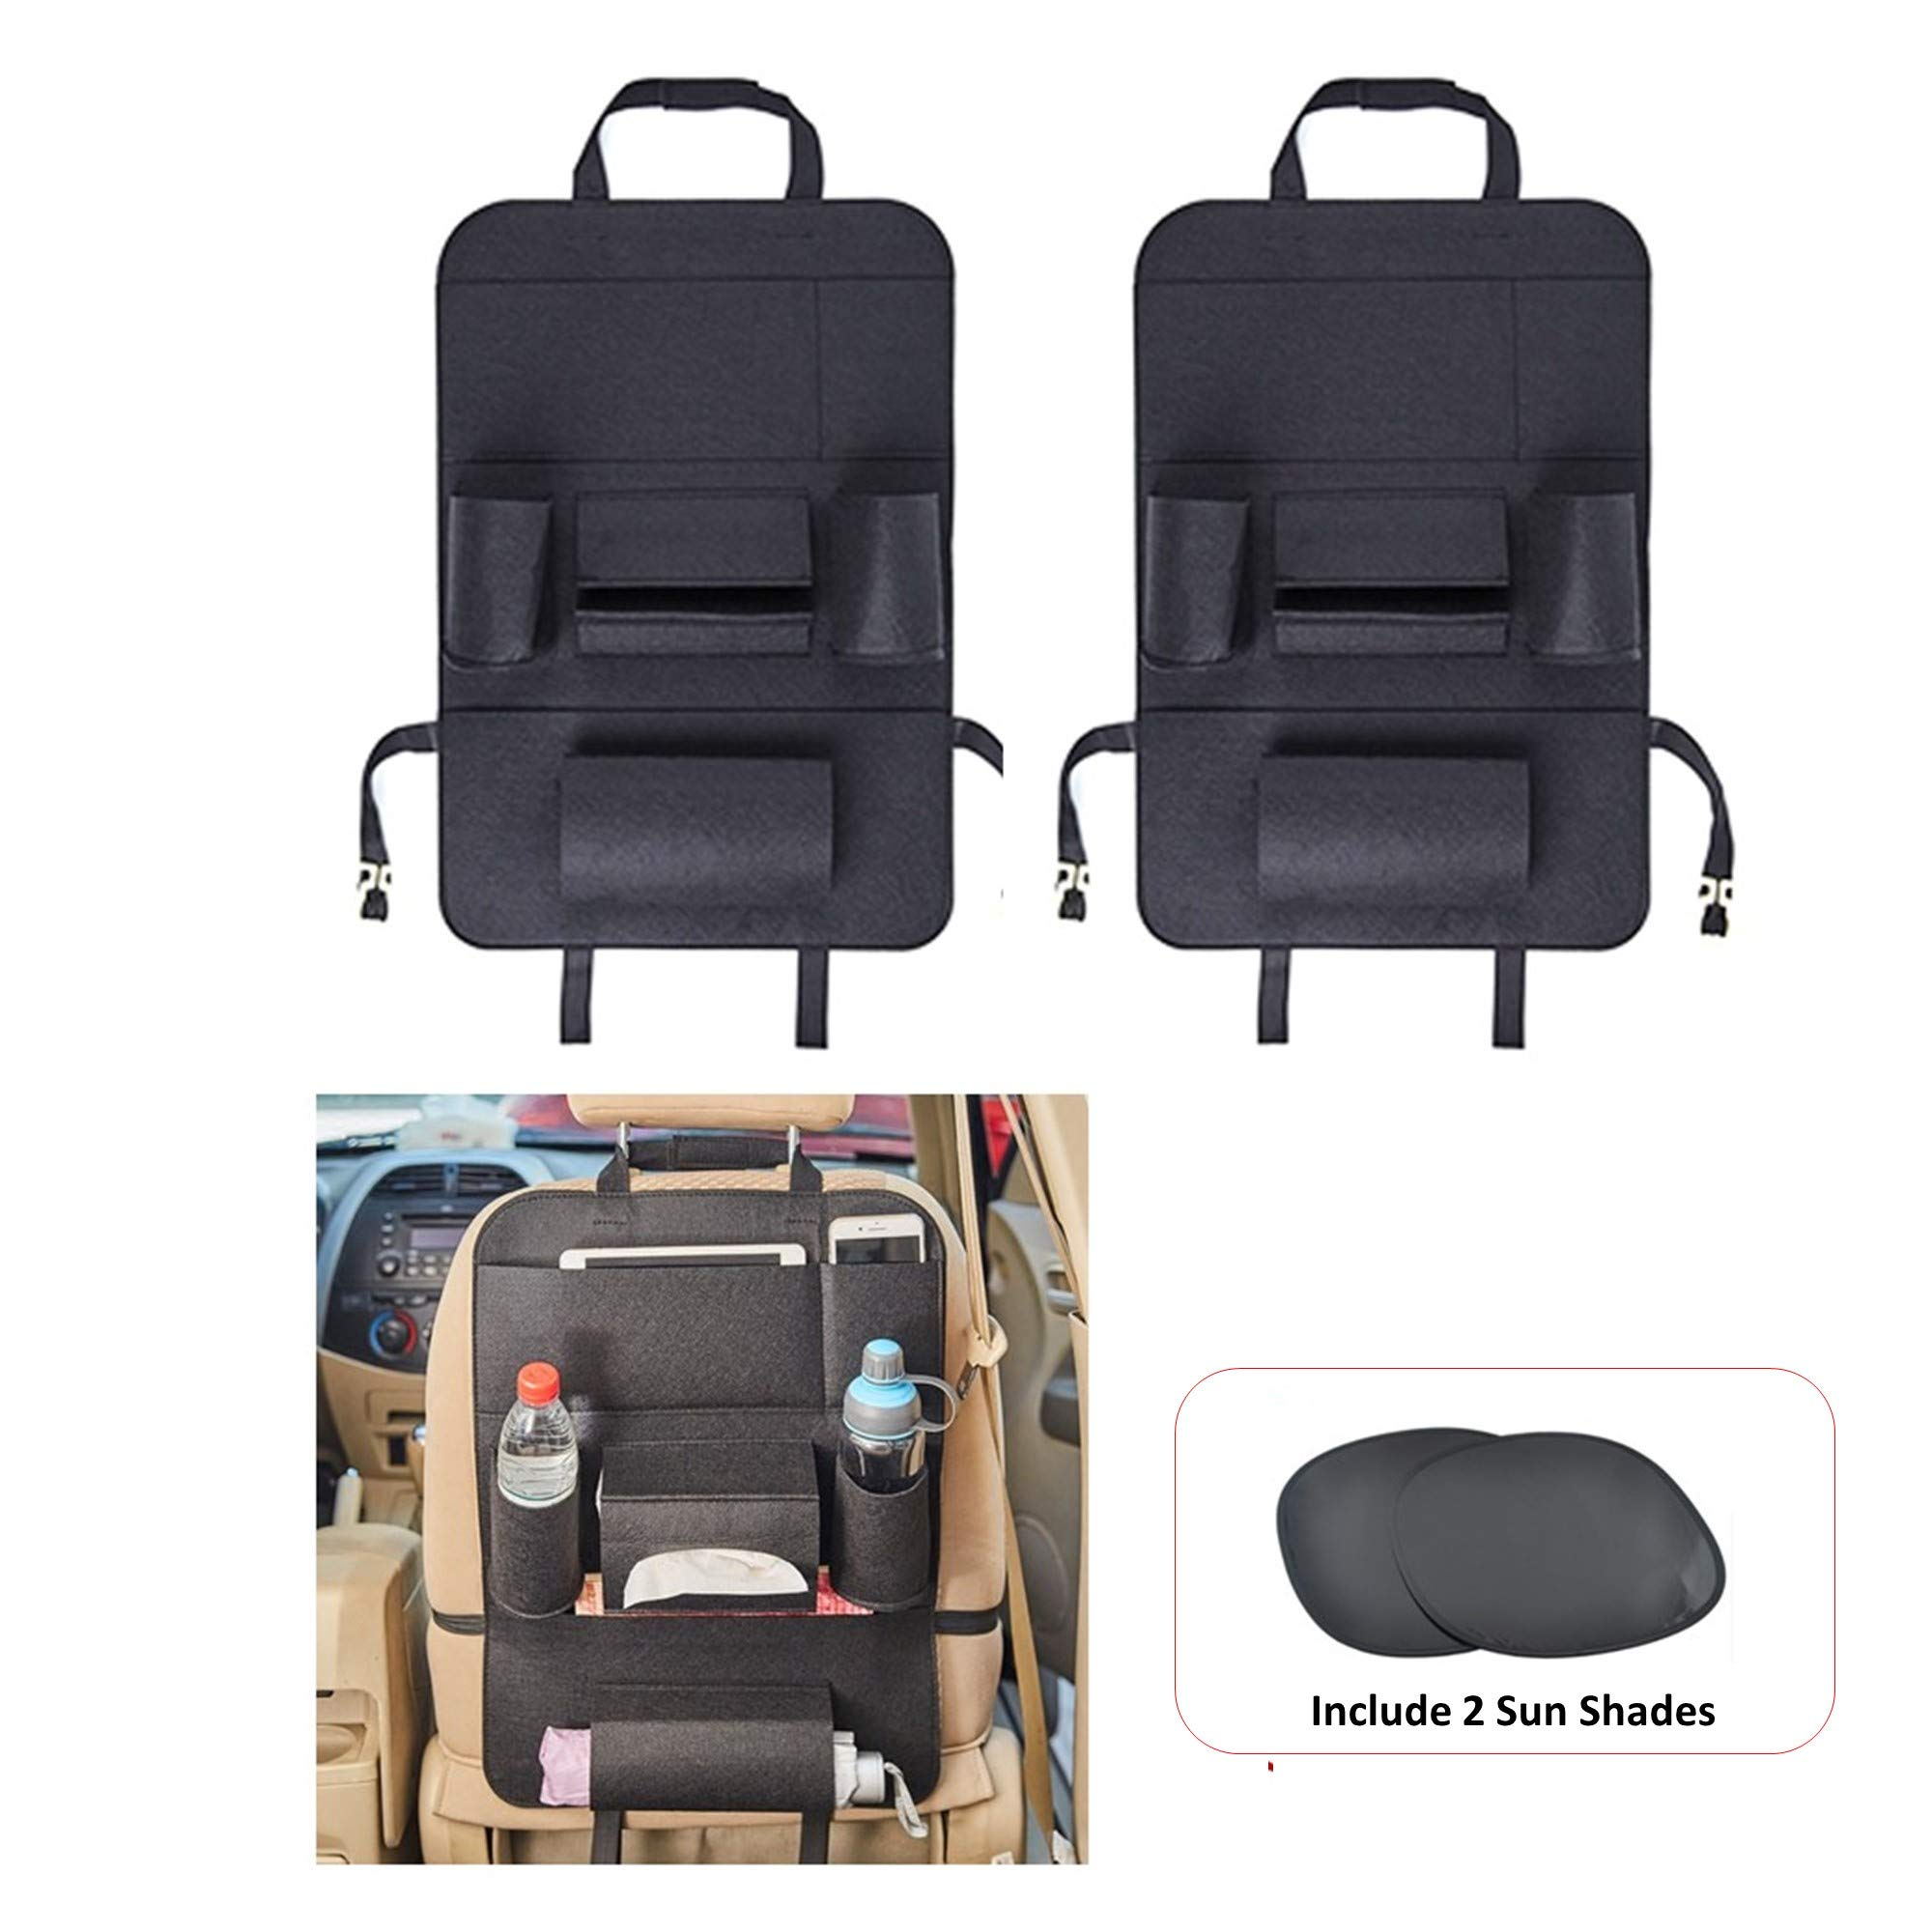 COSMOSS Car Seat Back Kick Protector with Backseat Organizer Pocket Storage, Tissue Box Holder [2-PACK] by, FREE SUNSHADES